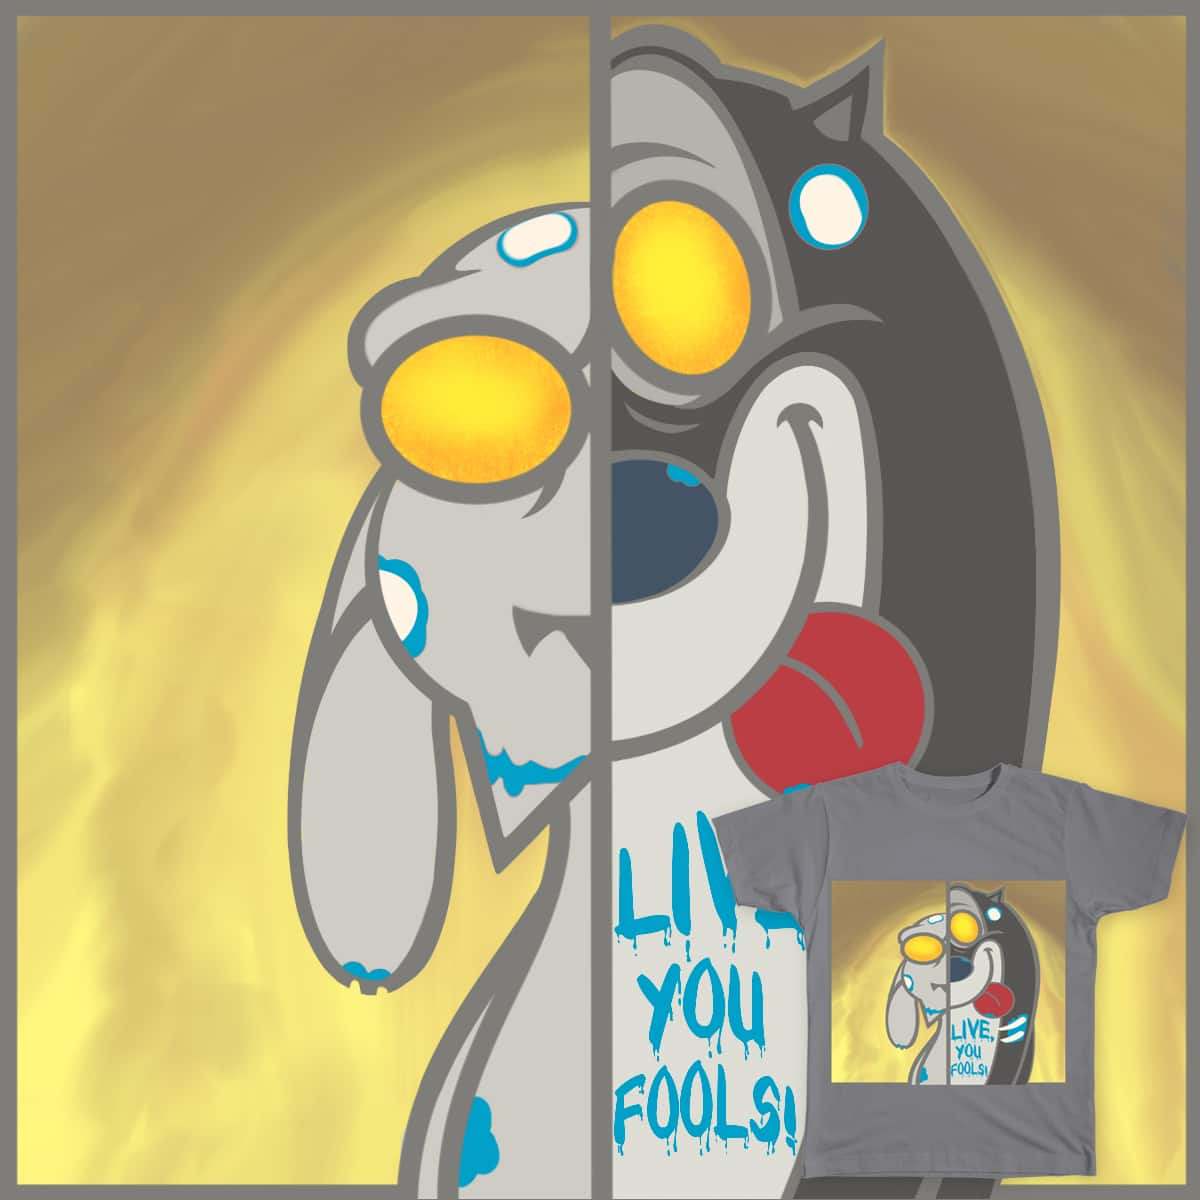 Live, you fools! by Contralives on Threadless